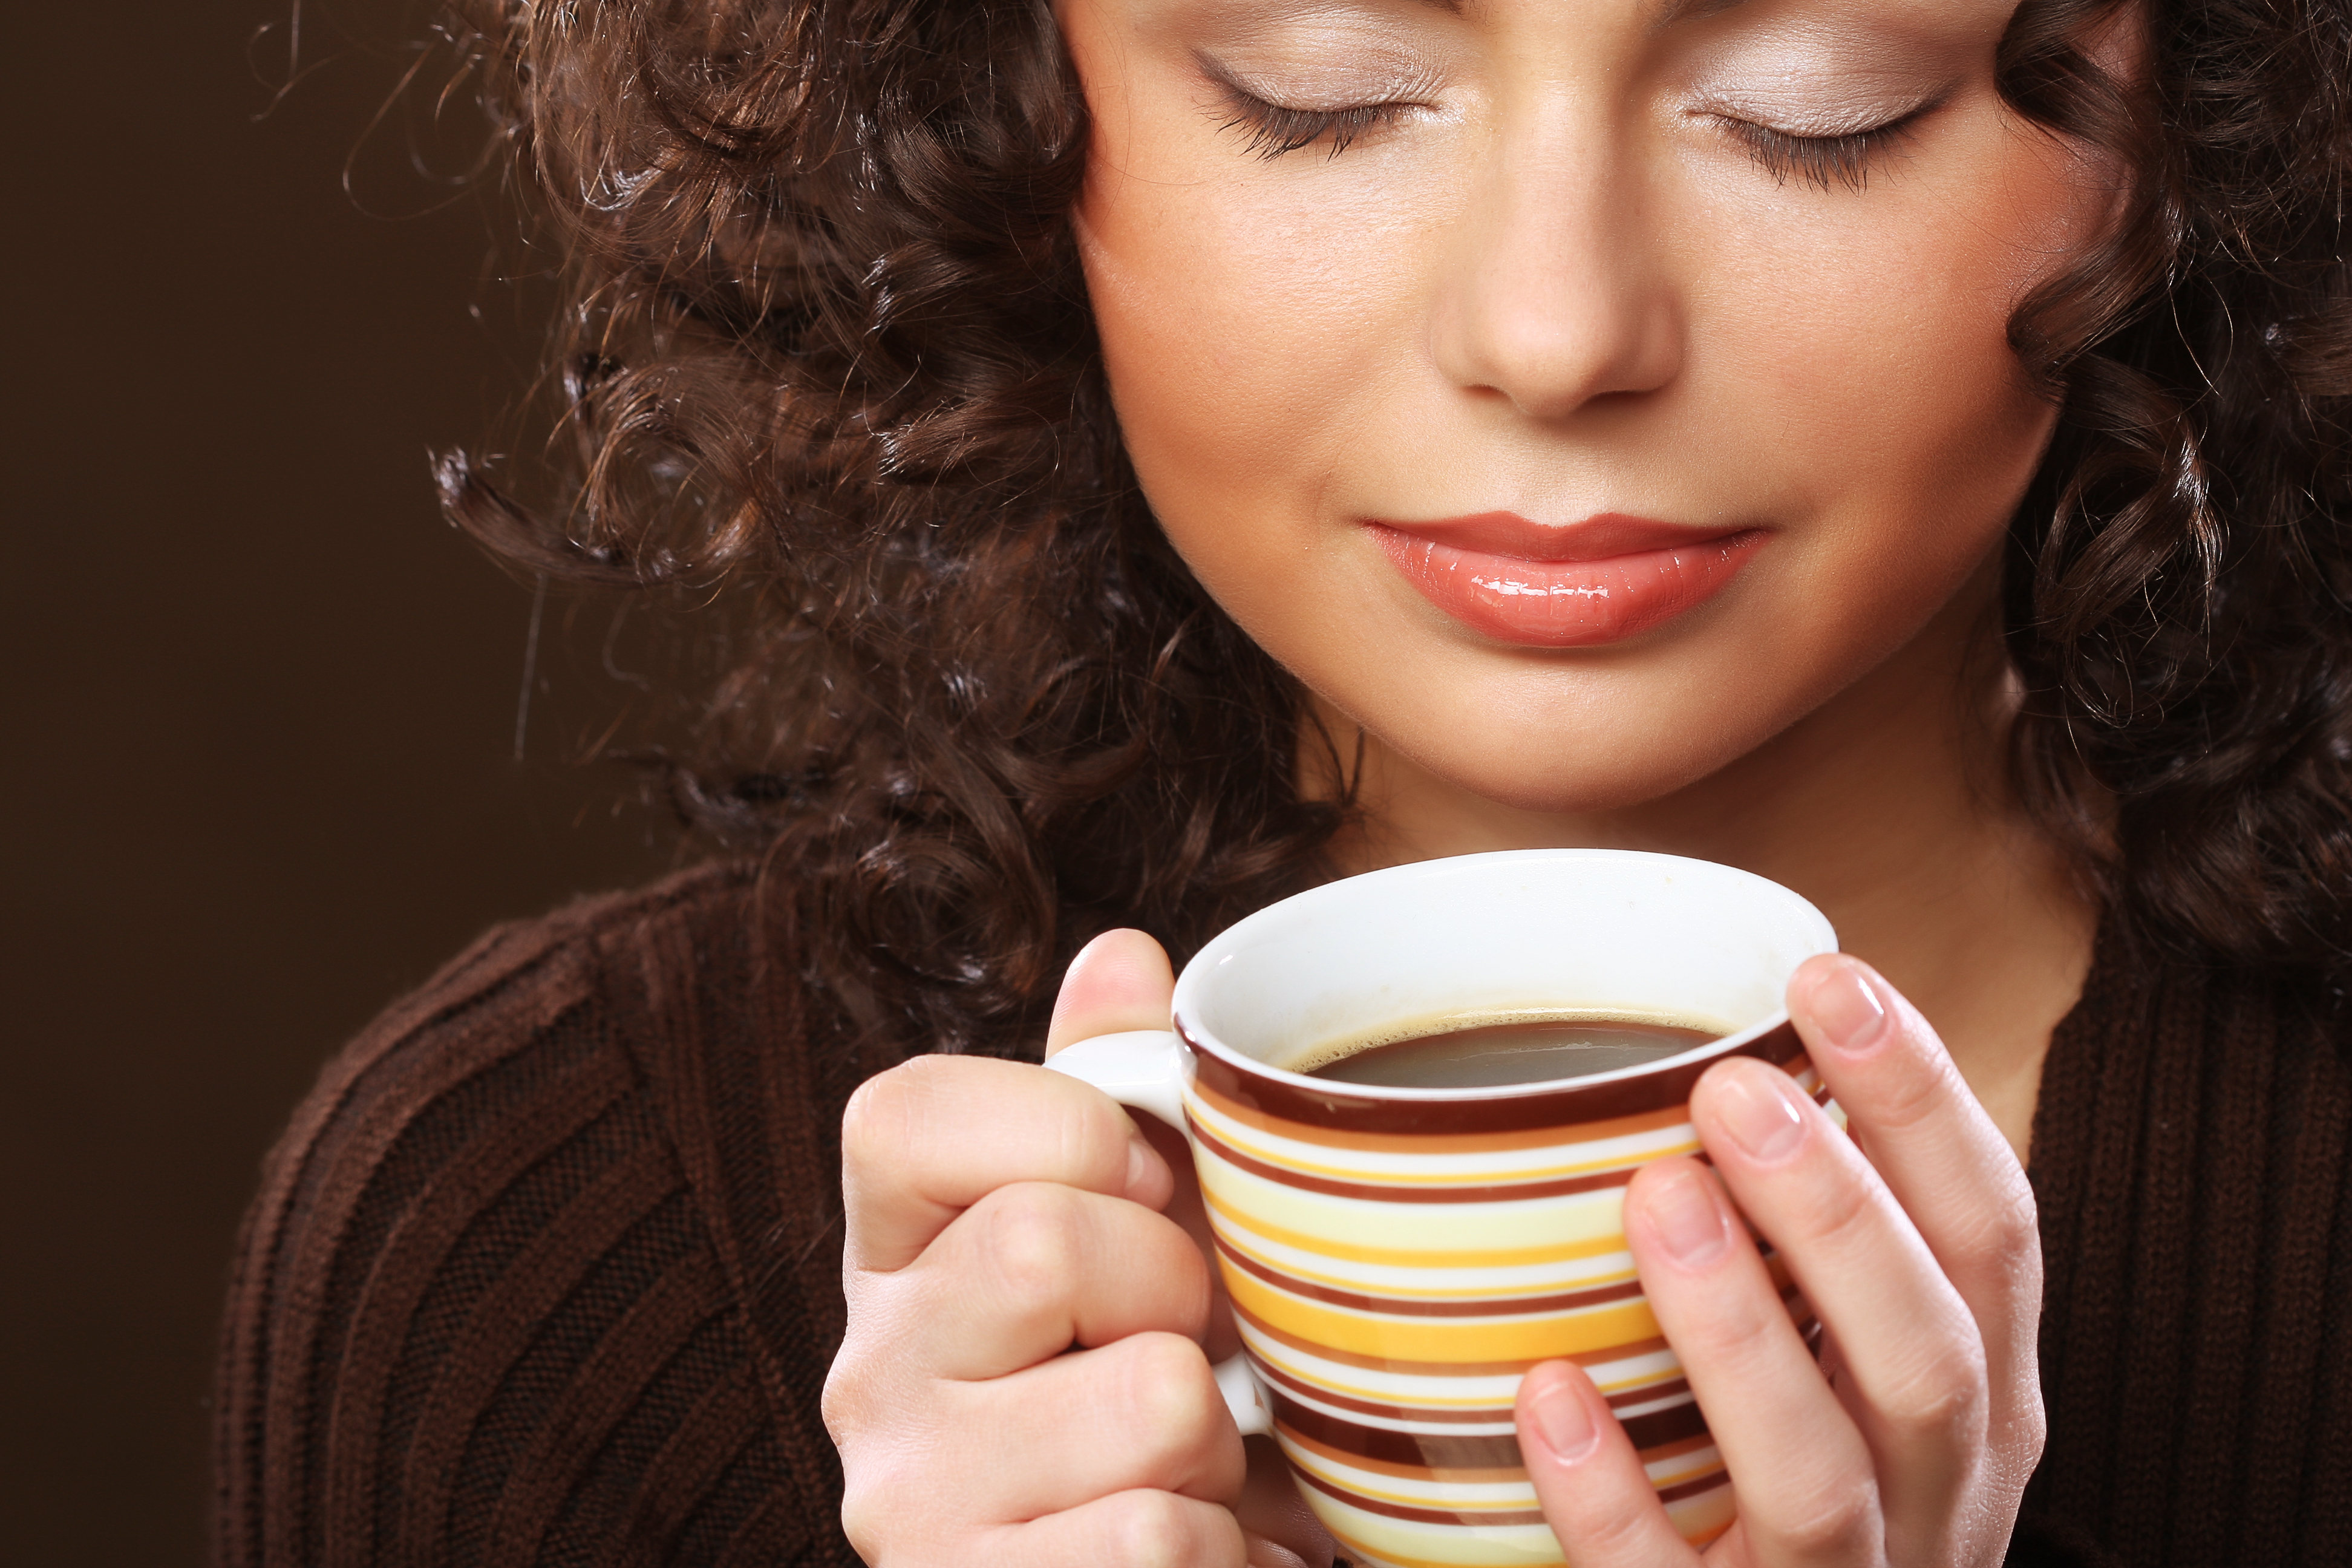 Woman holding cup of coffee with both hands and eyes closed.